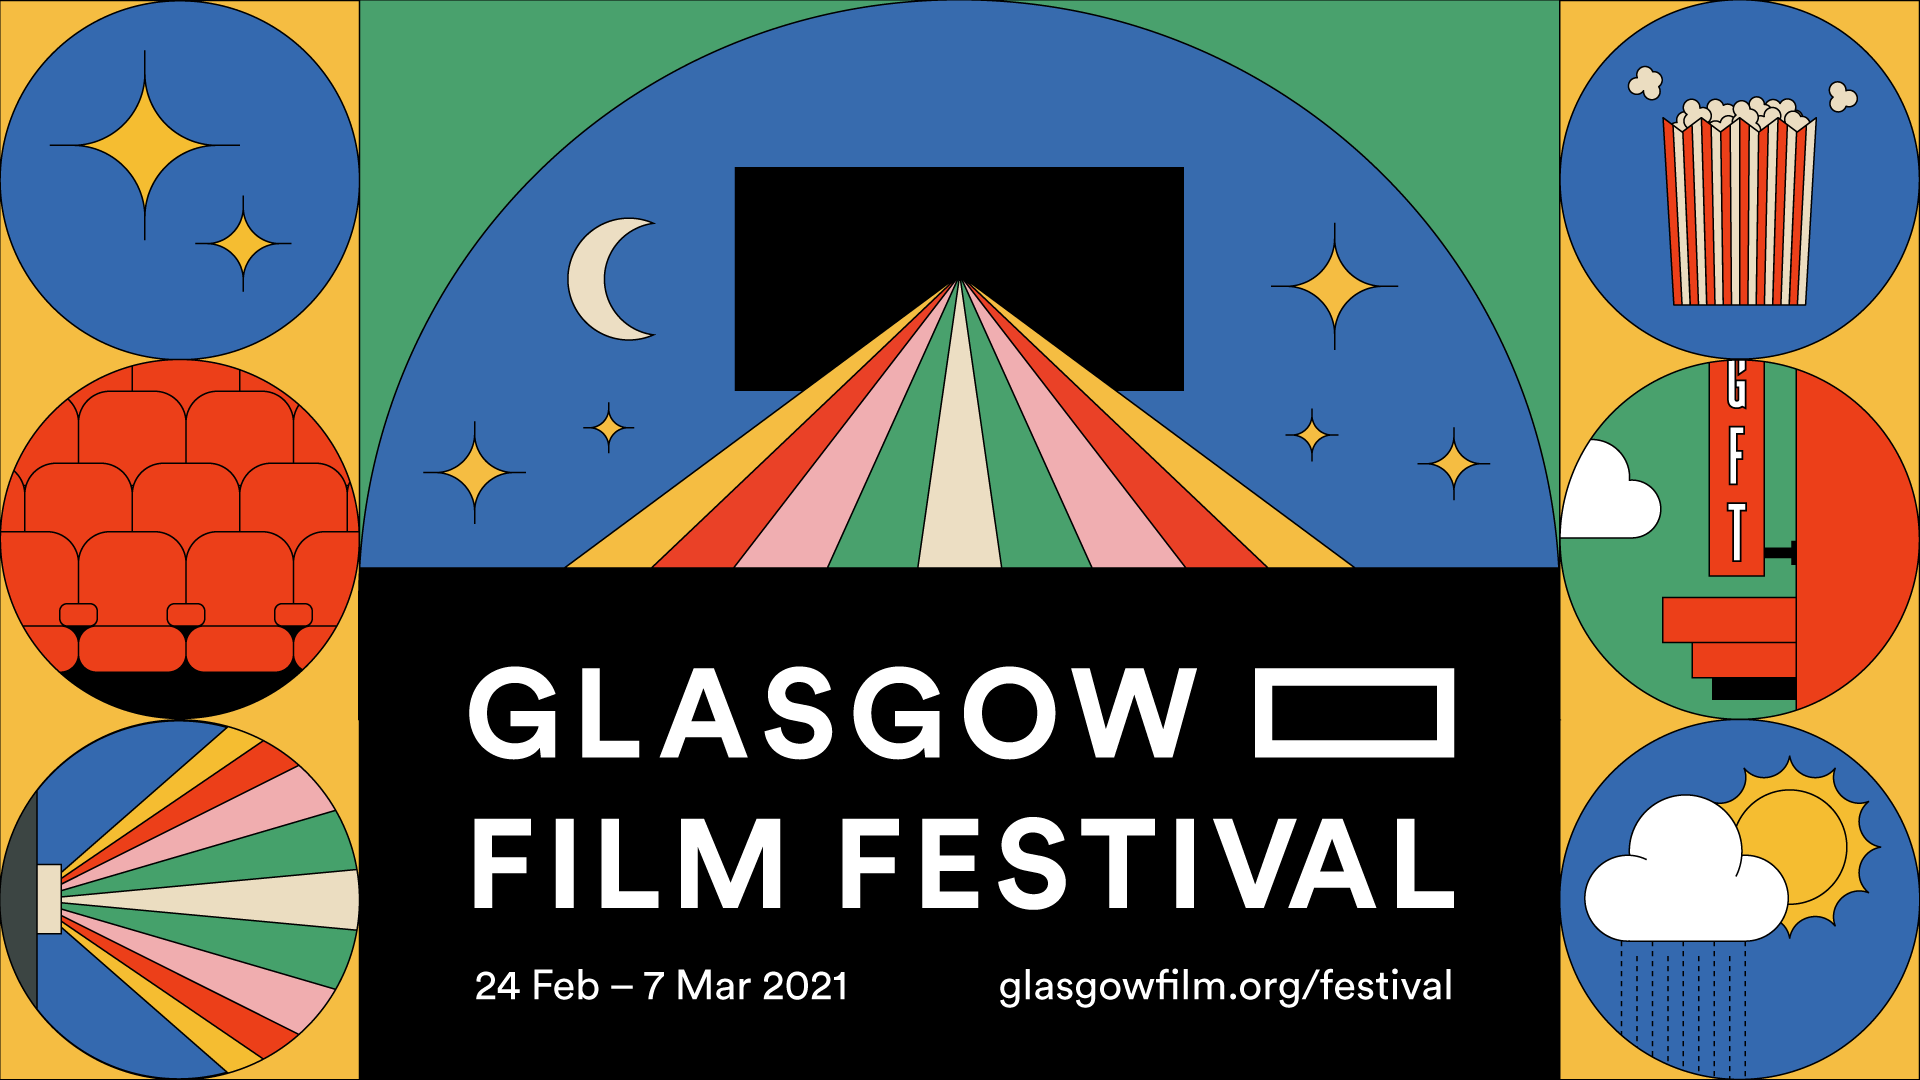 Top 5 Must-See Movies of Glasgow Film Festival 2021